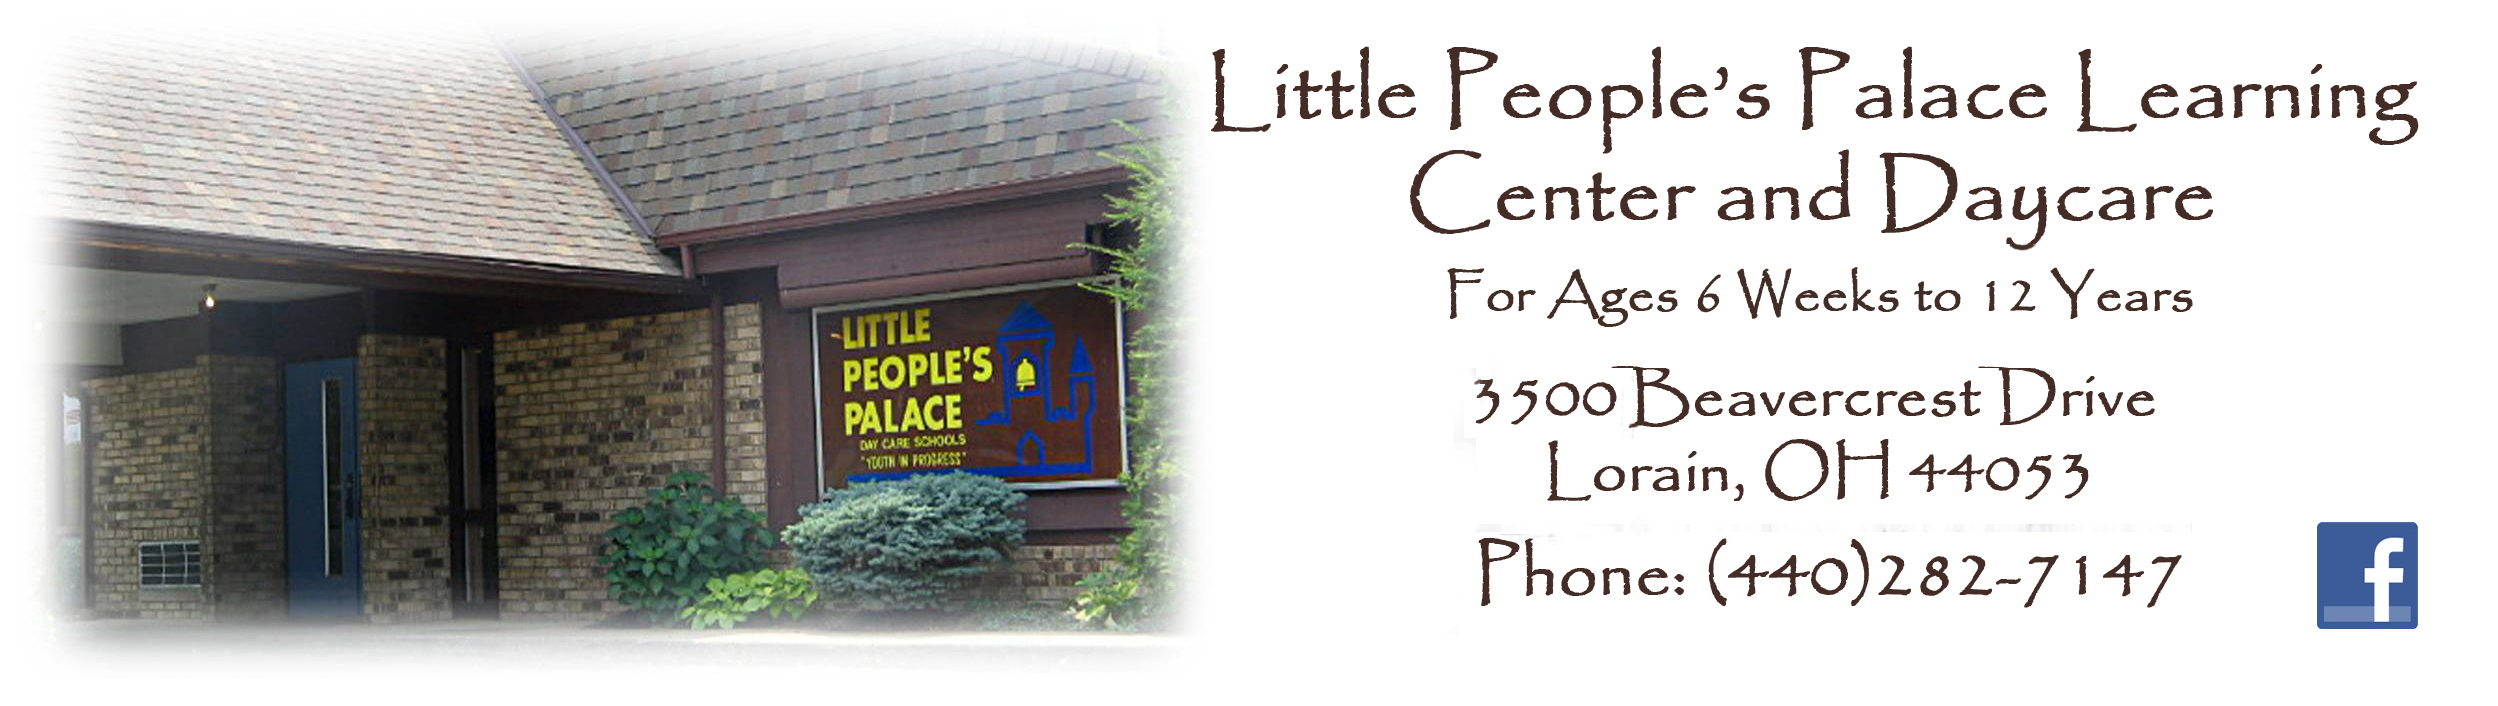 LITTLE PEOPLE'S PALACE